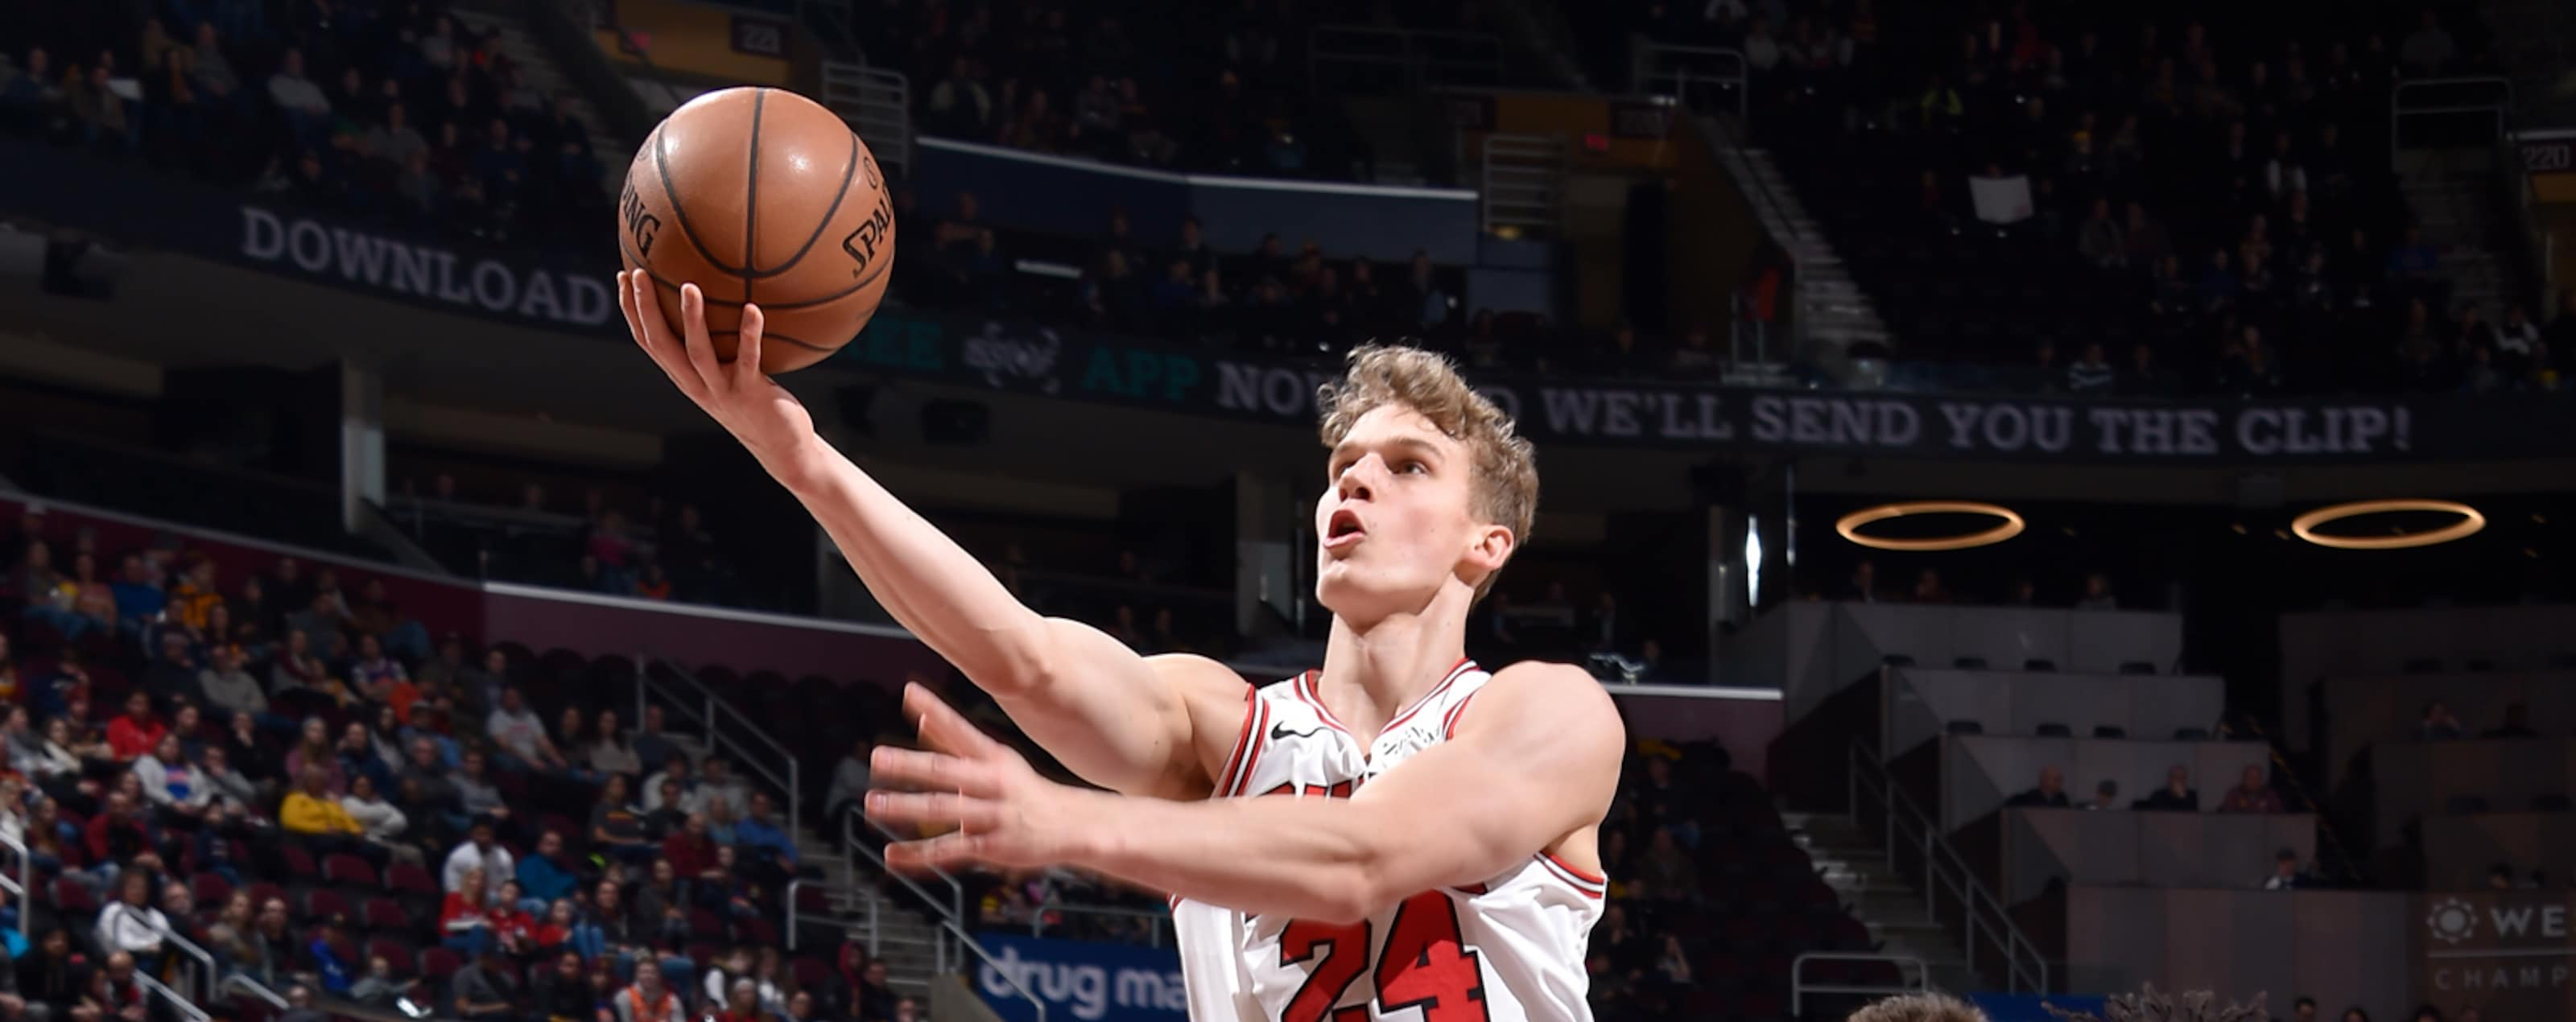 Lauri Markkanen shoots the ball against the Cleveland Cavaliers.